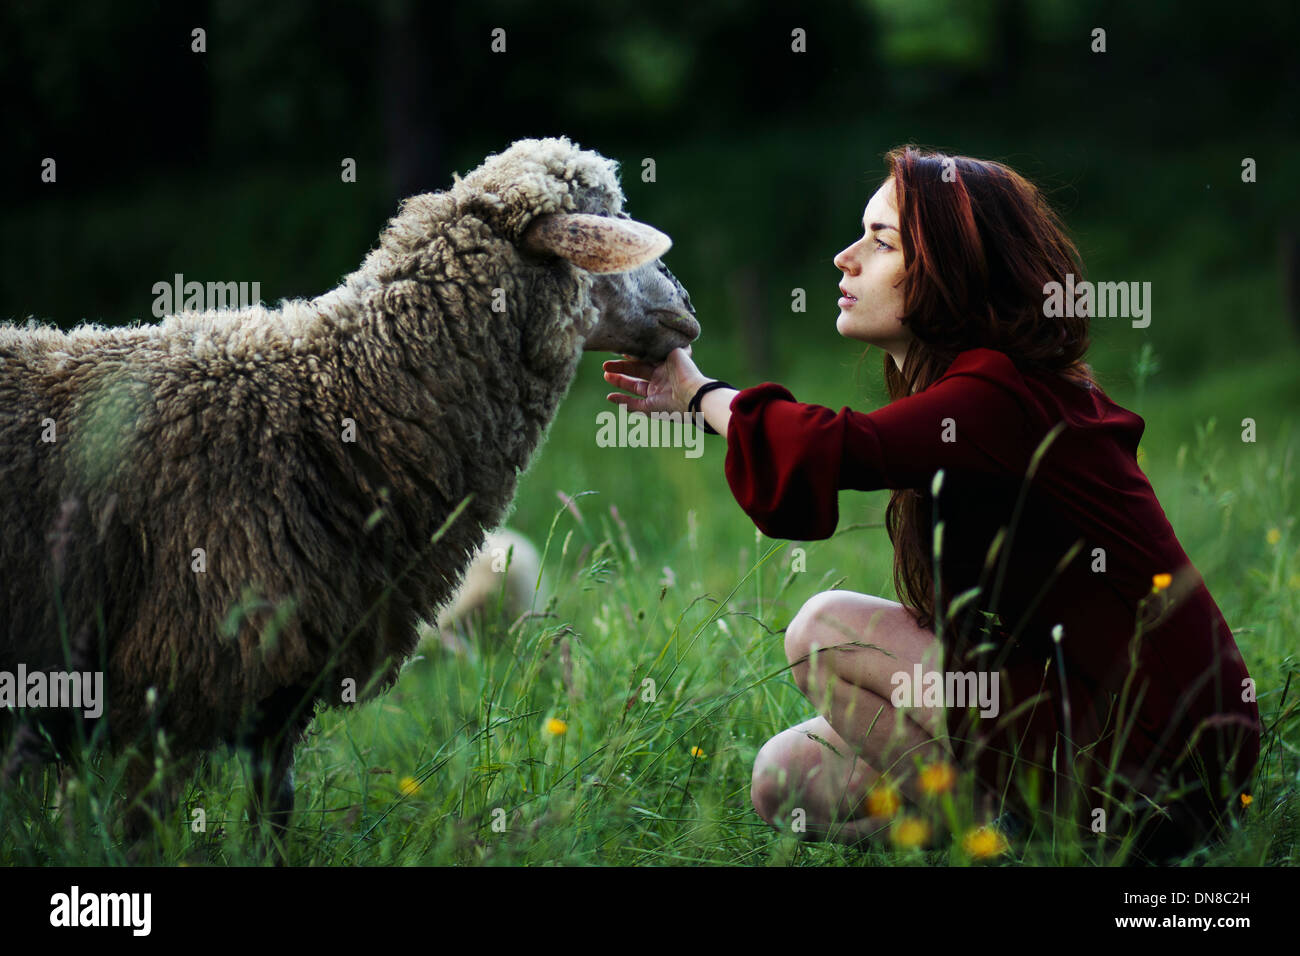 Young woman with sheep on a meadow - Stock Image